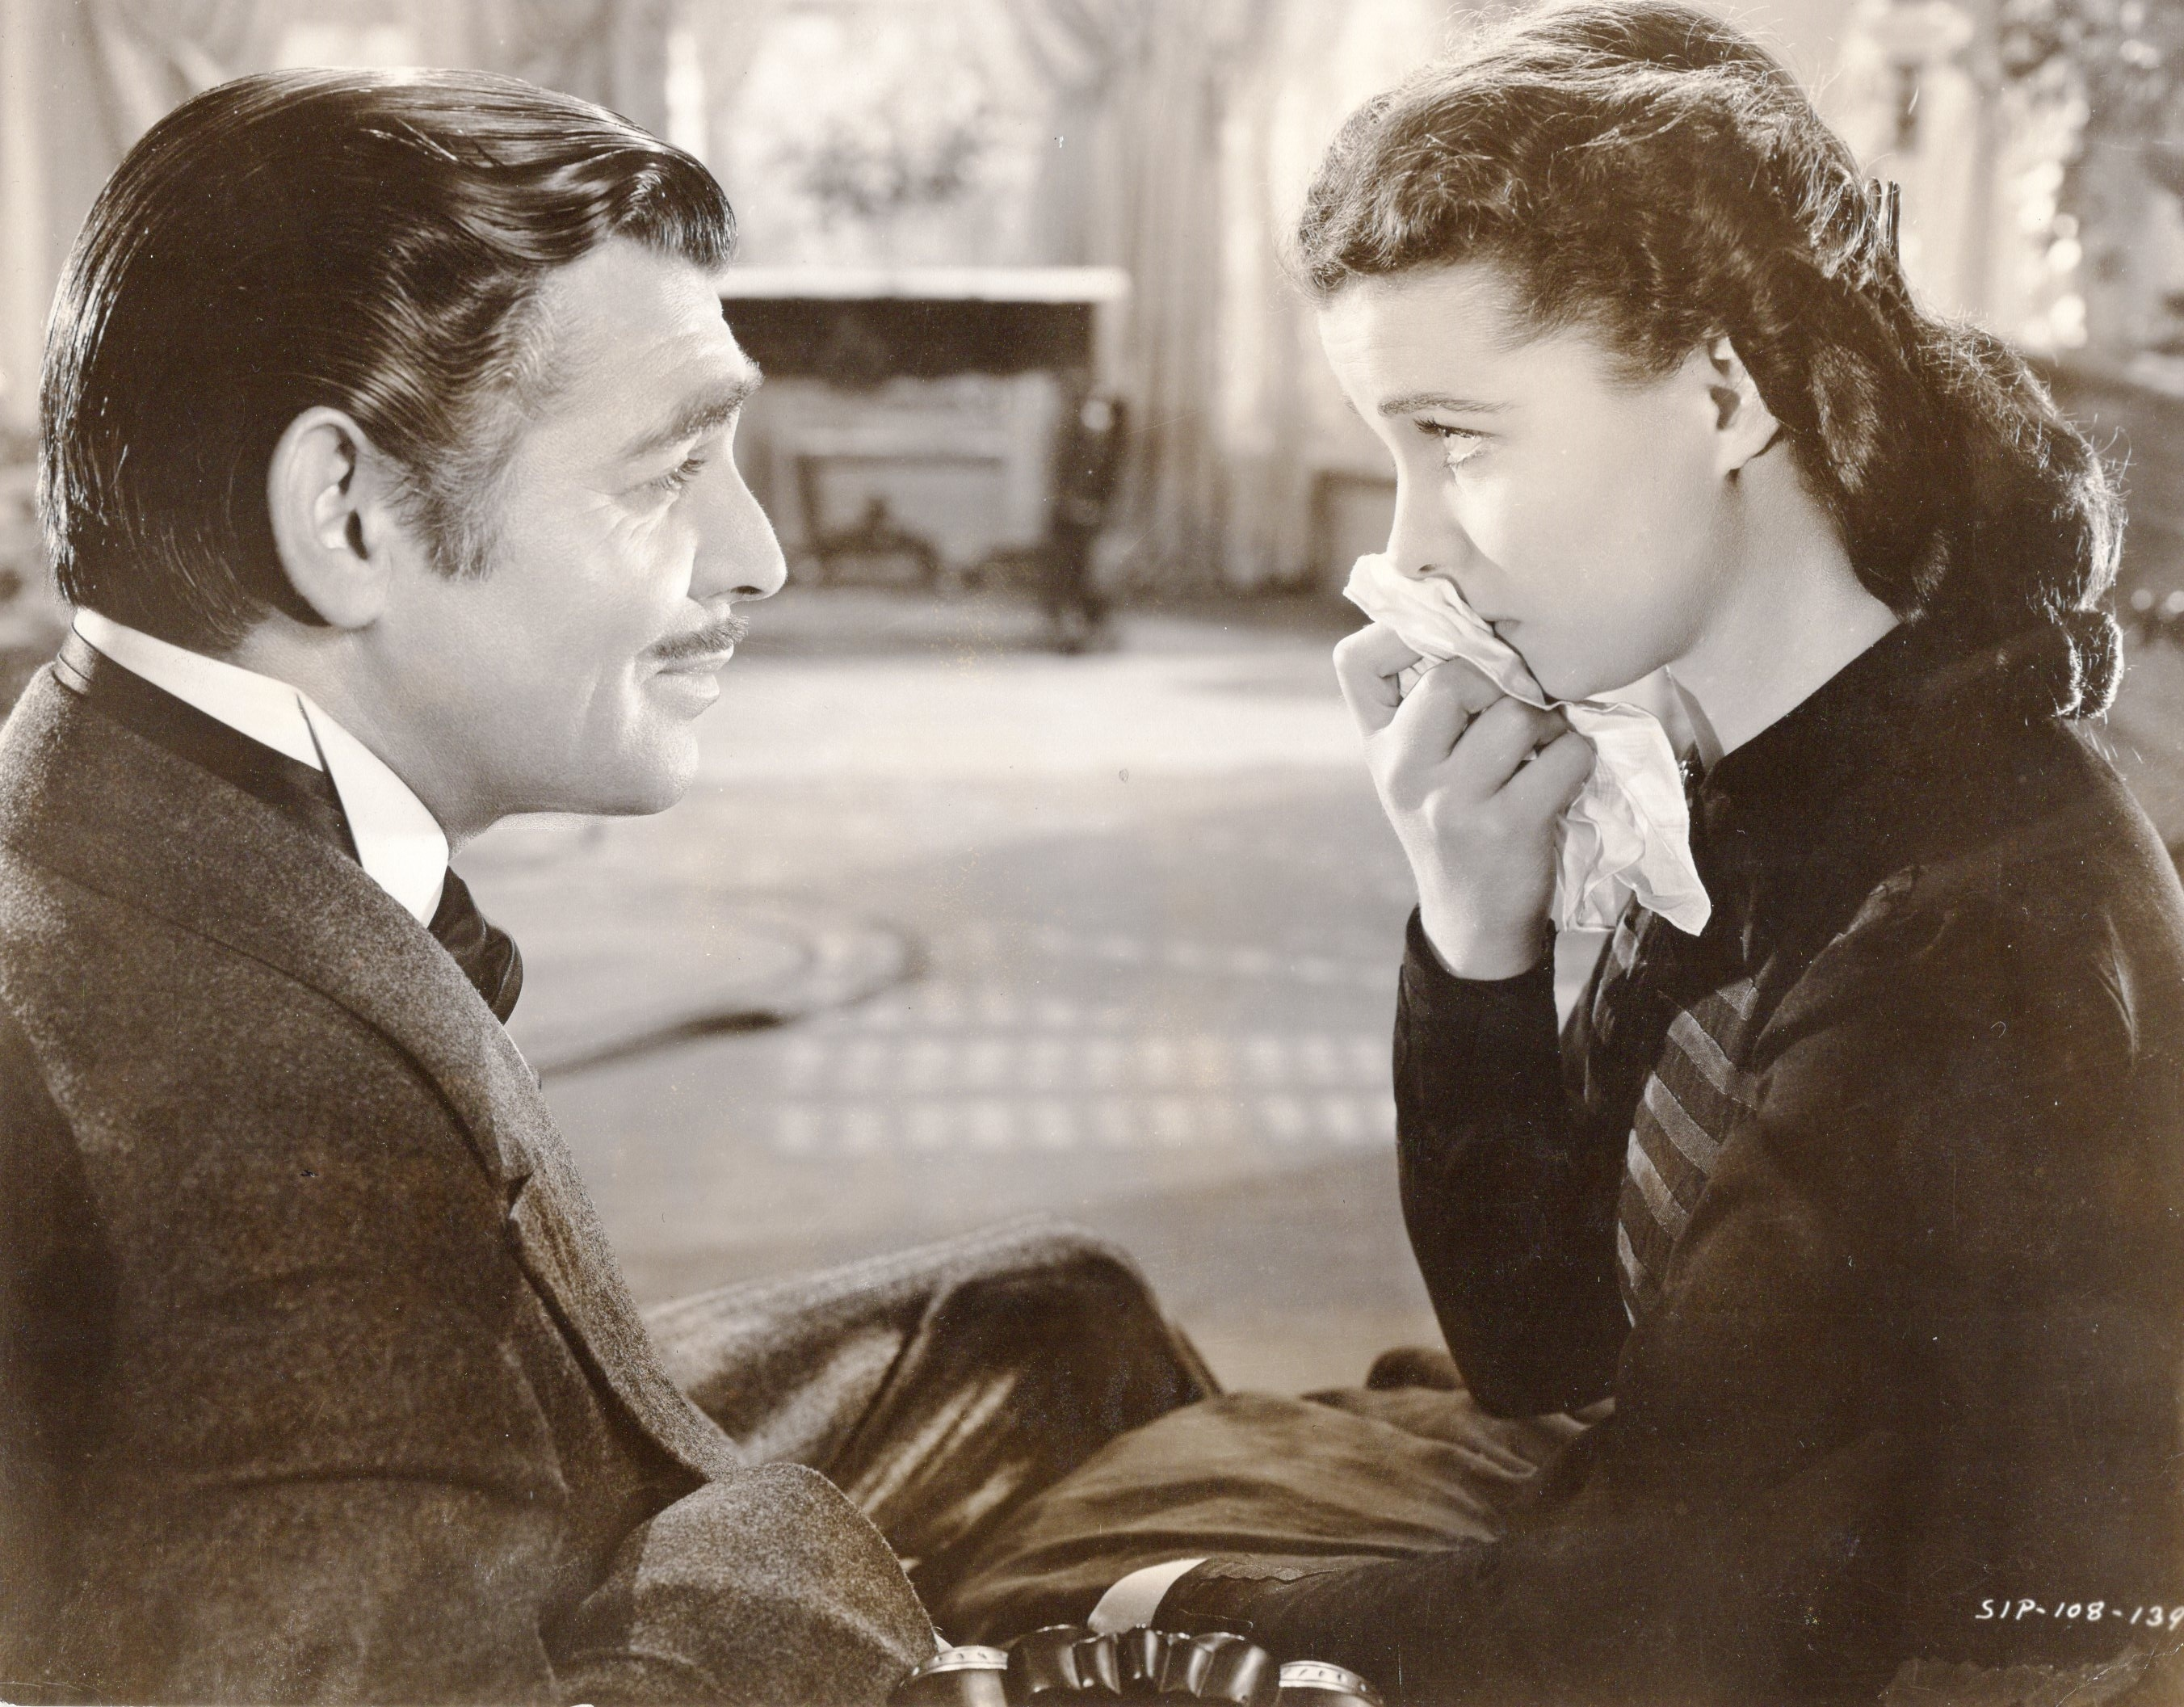 Lot 1044 - A Clark Gable collar from Gone With the Wind